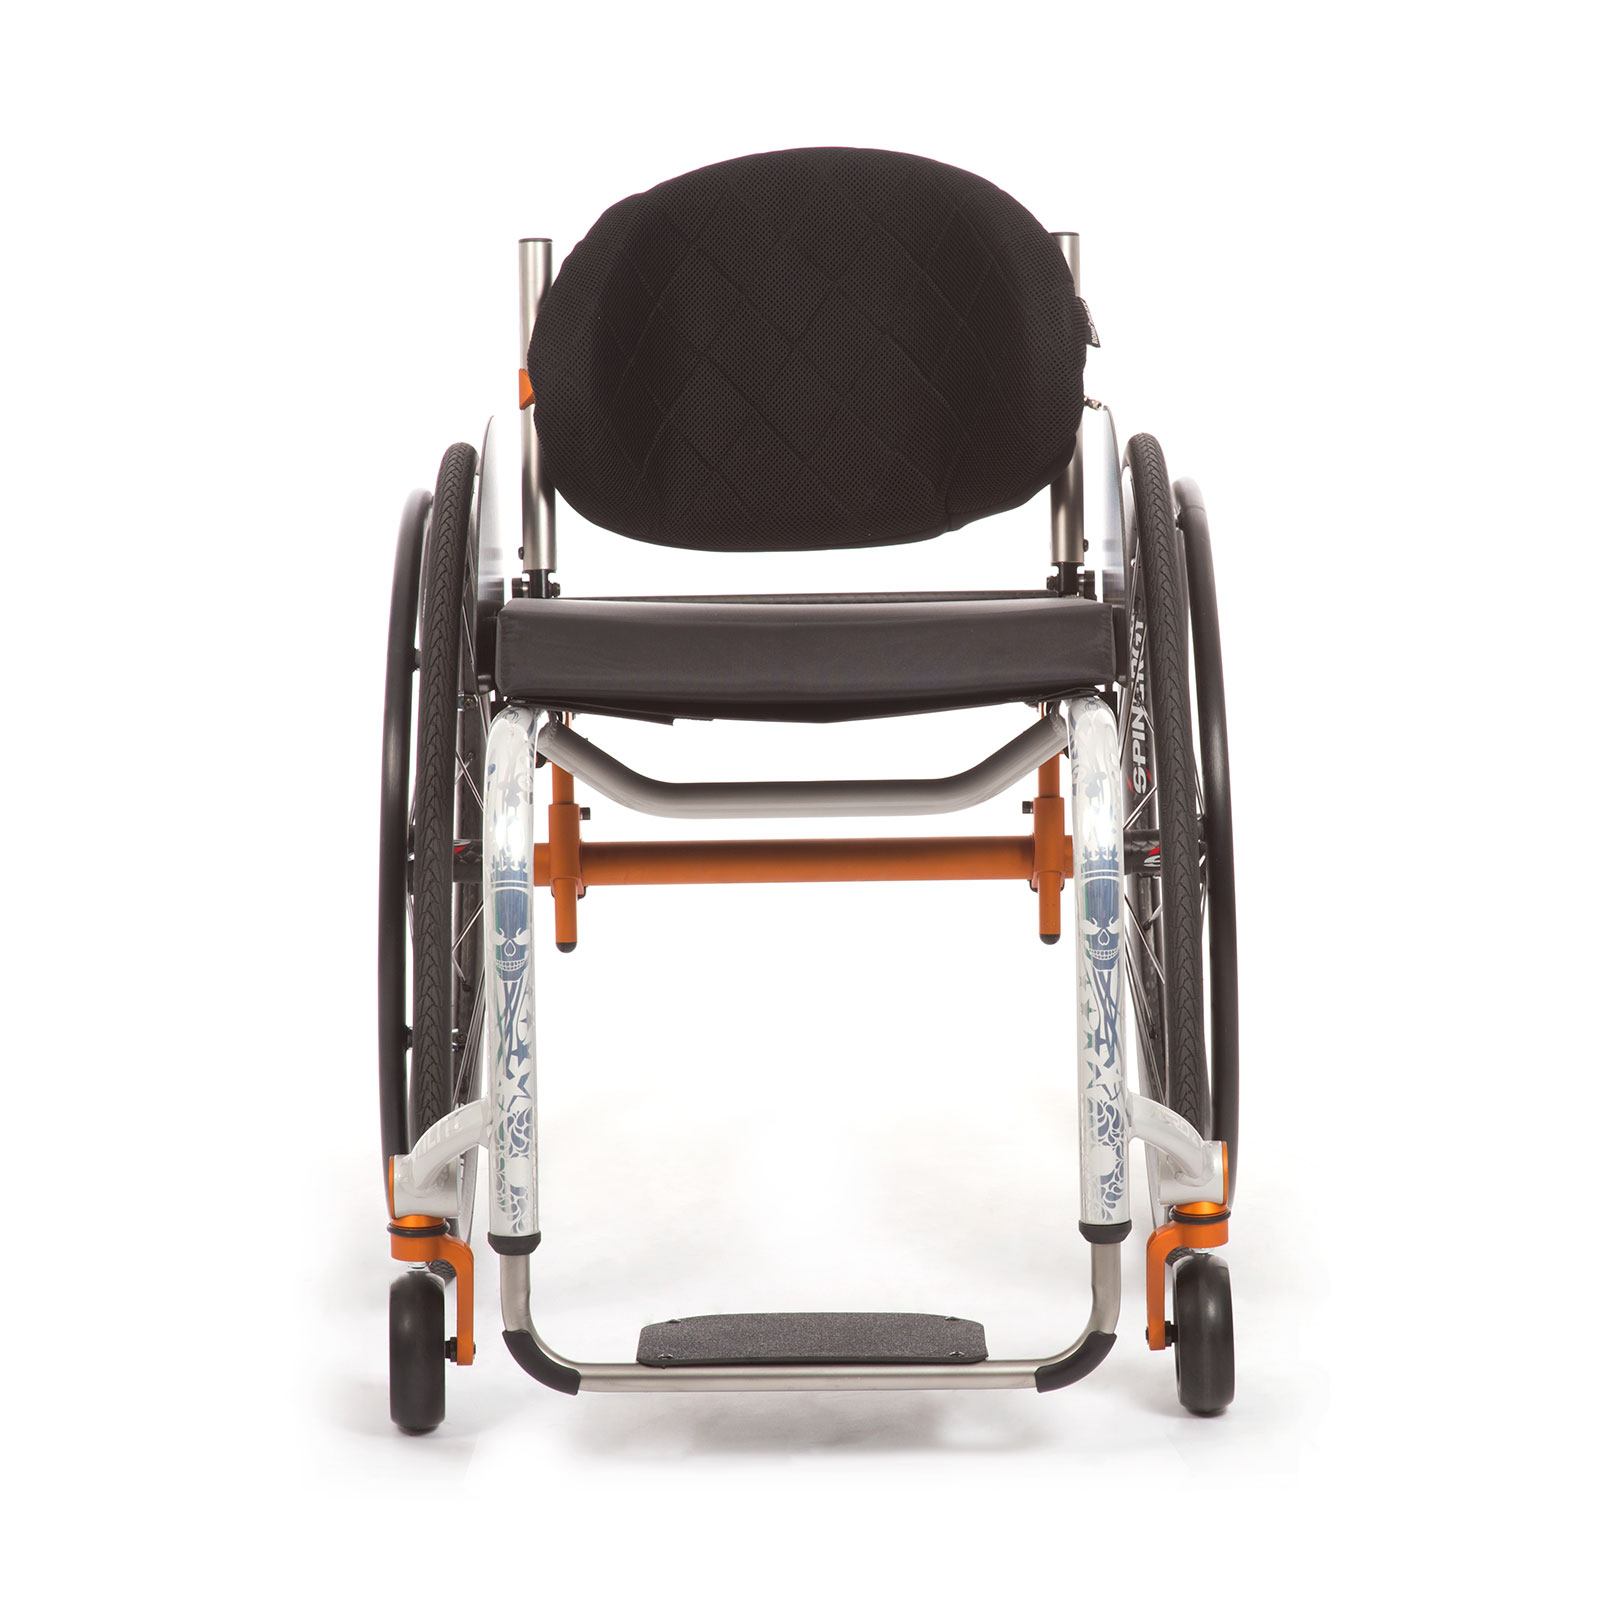 The Front of Wheelchair with a lighter weight.